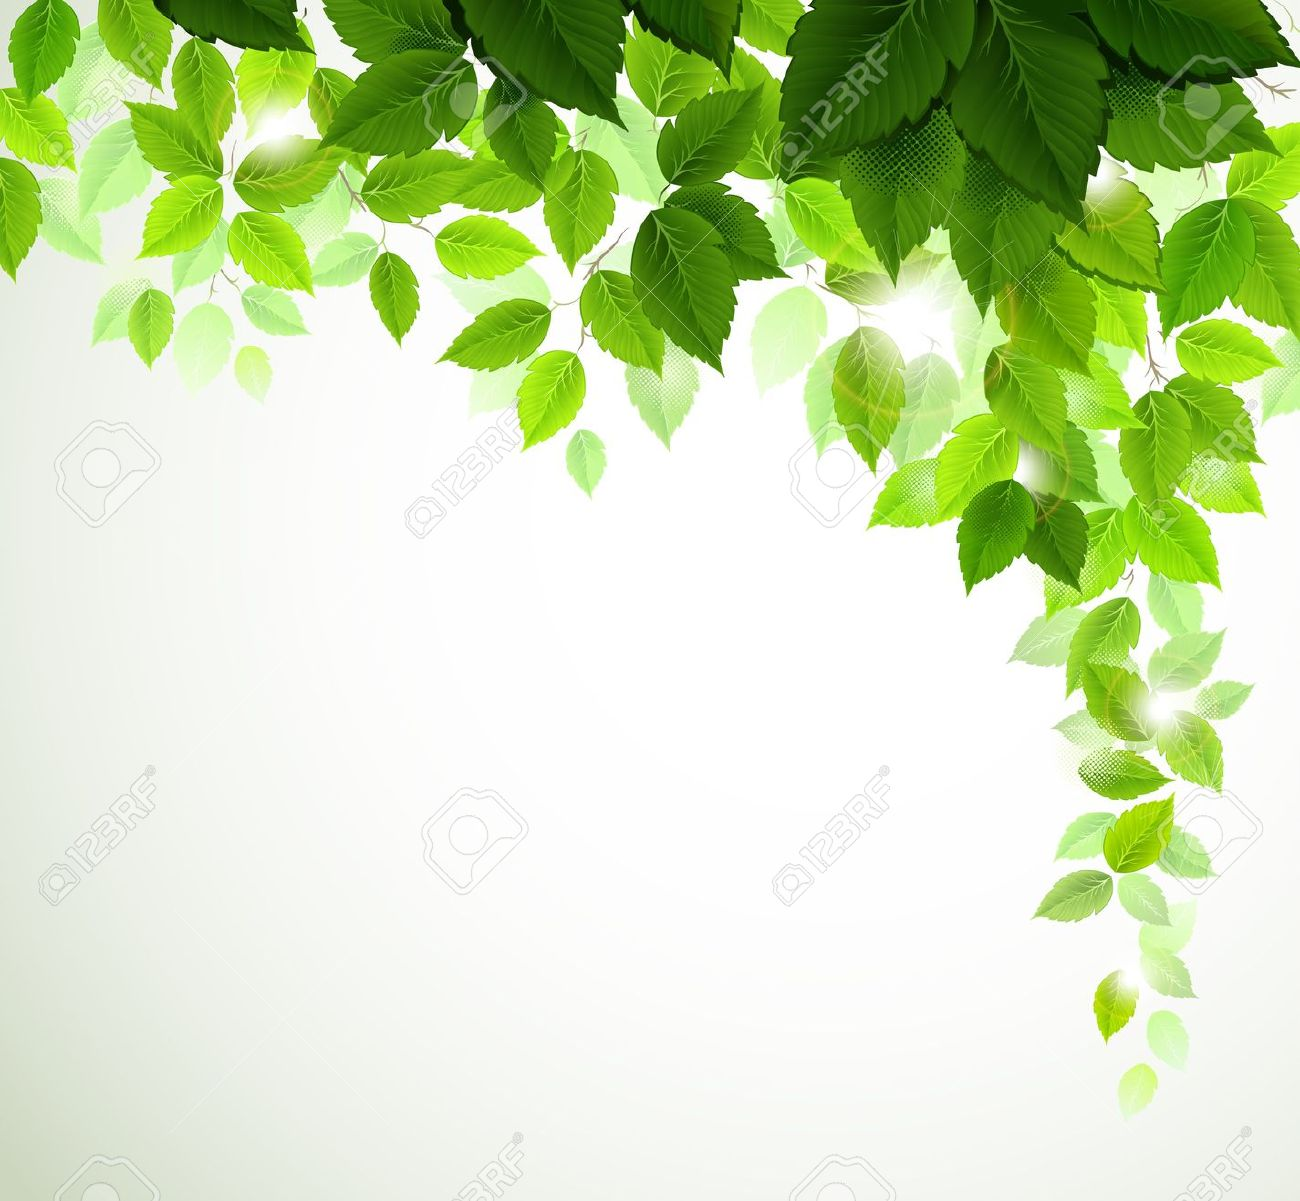 Spring Leaves Vector Background - Download Free Vector Art, Stock ...